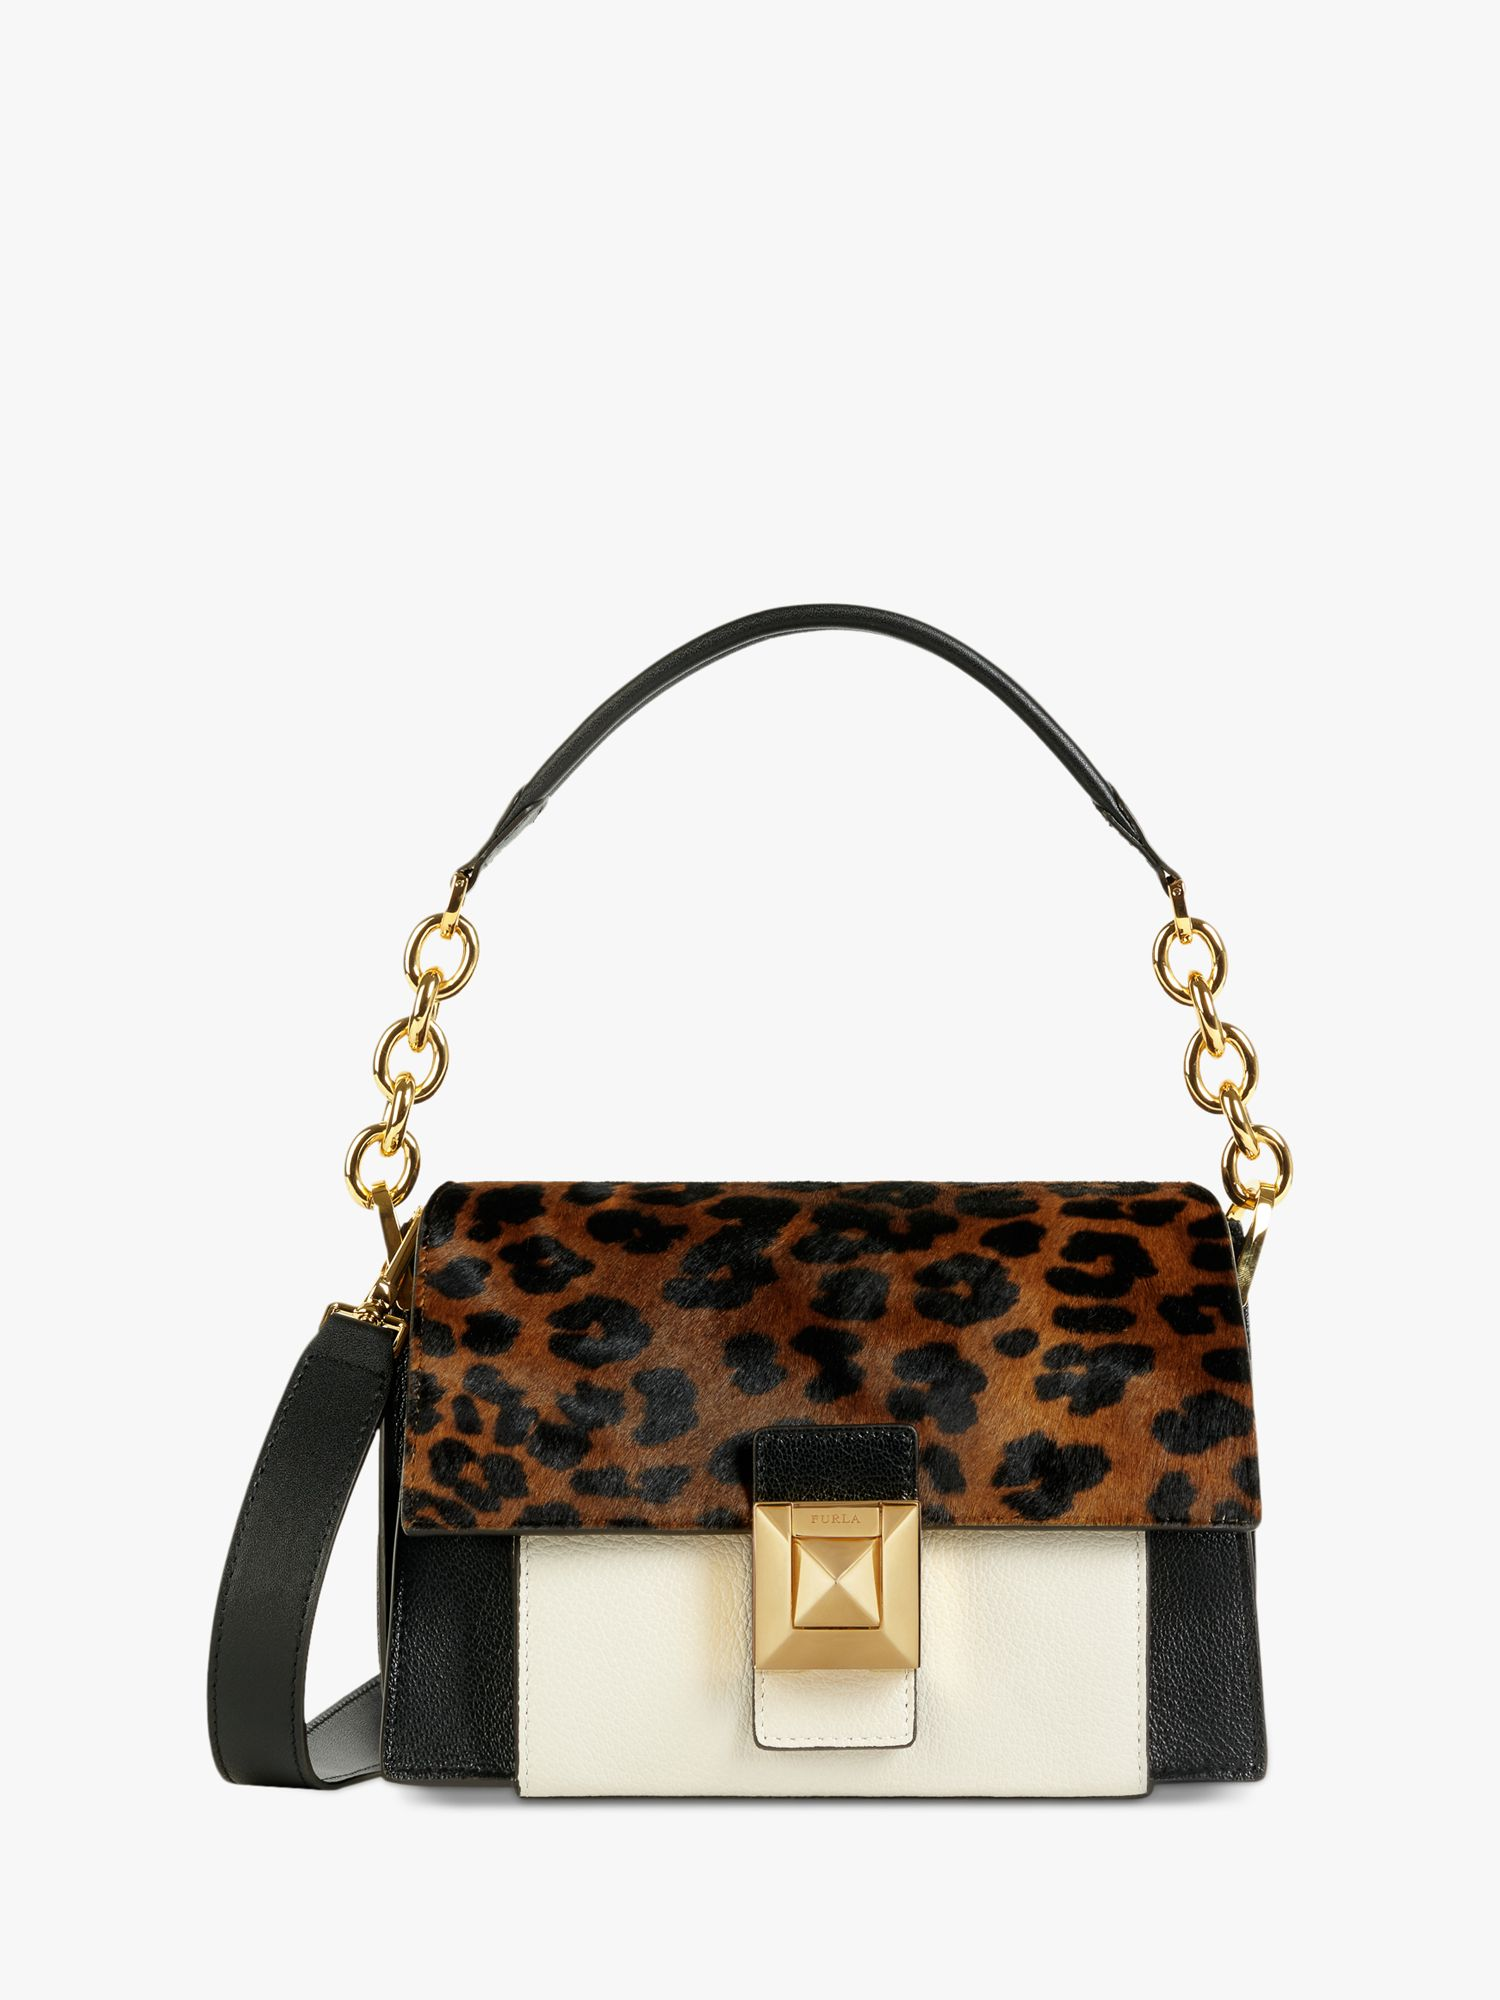 Furla Furla Diva Mini Leather Shoulder Bag